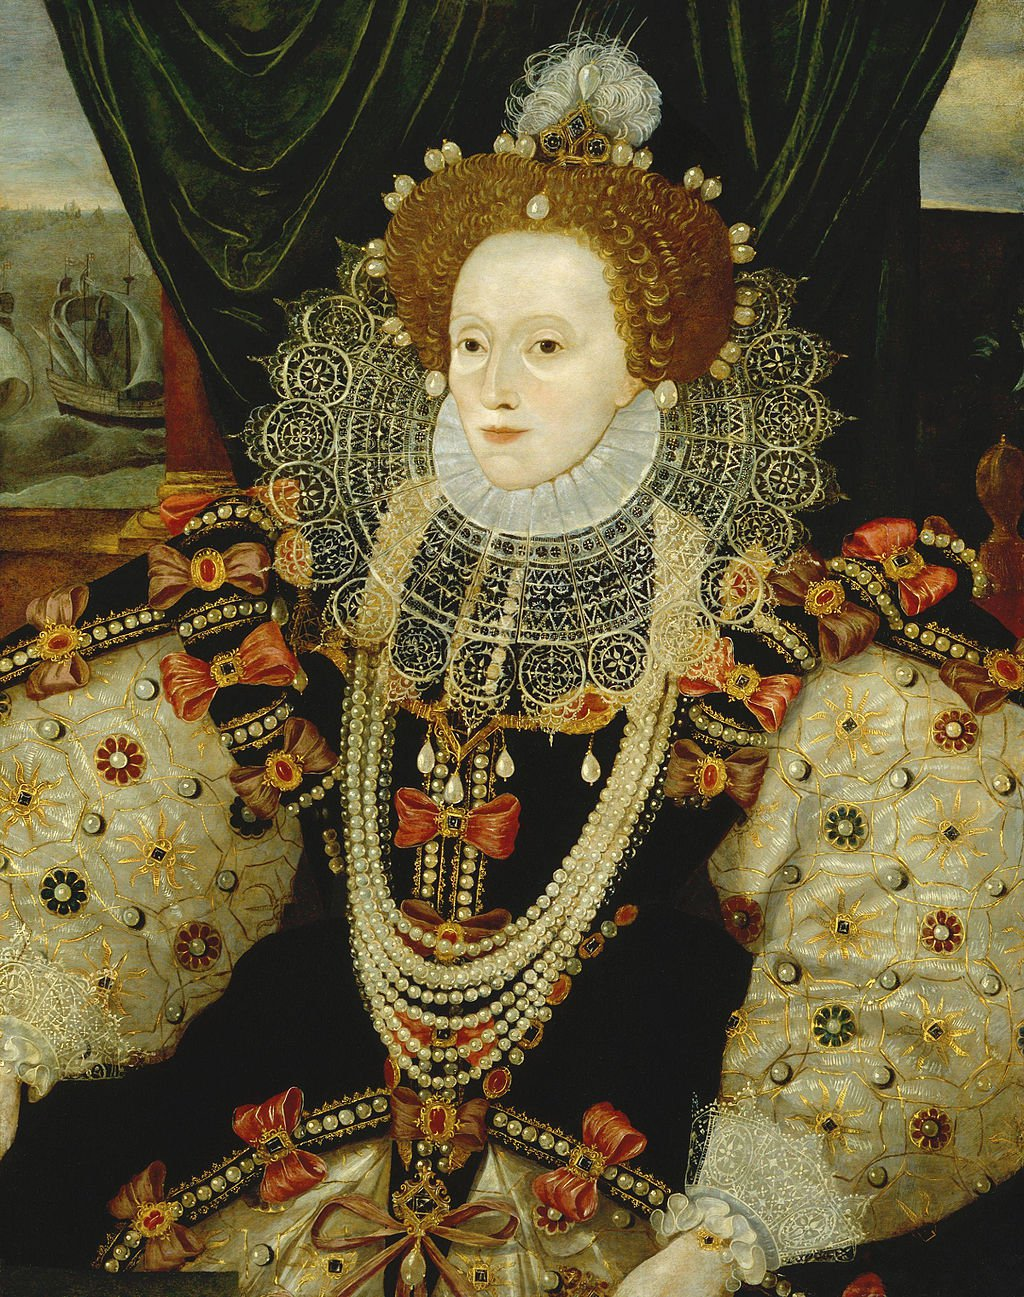 Three Portraits of Victorious Elizabeth I to Be Displayed Together for the First Time